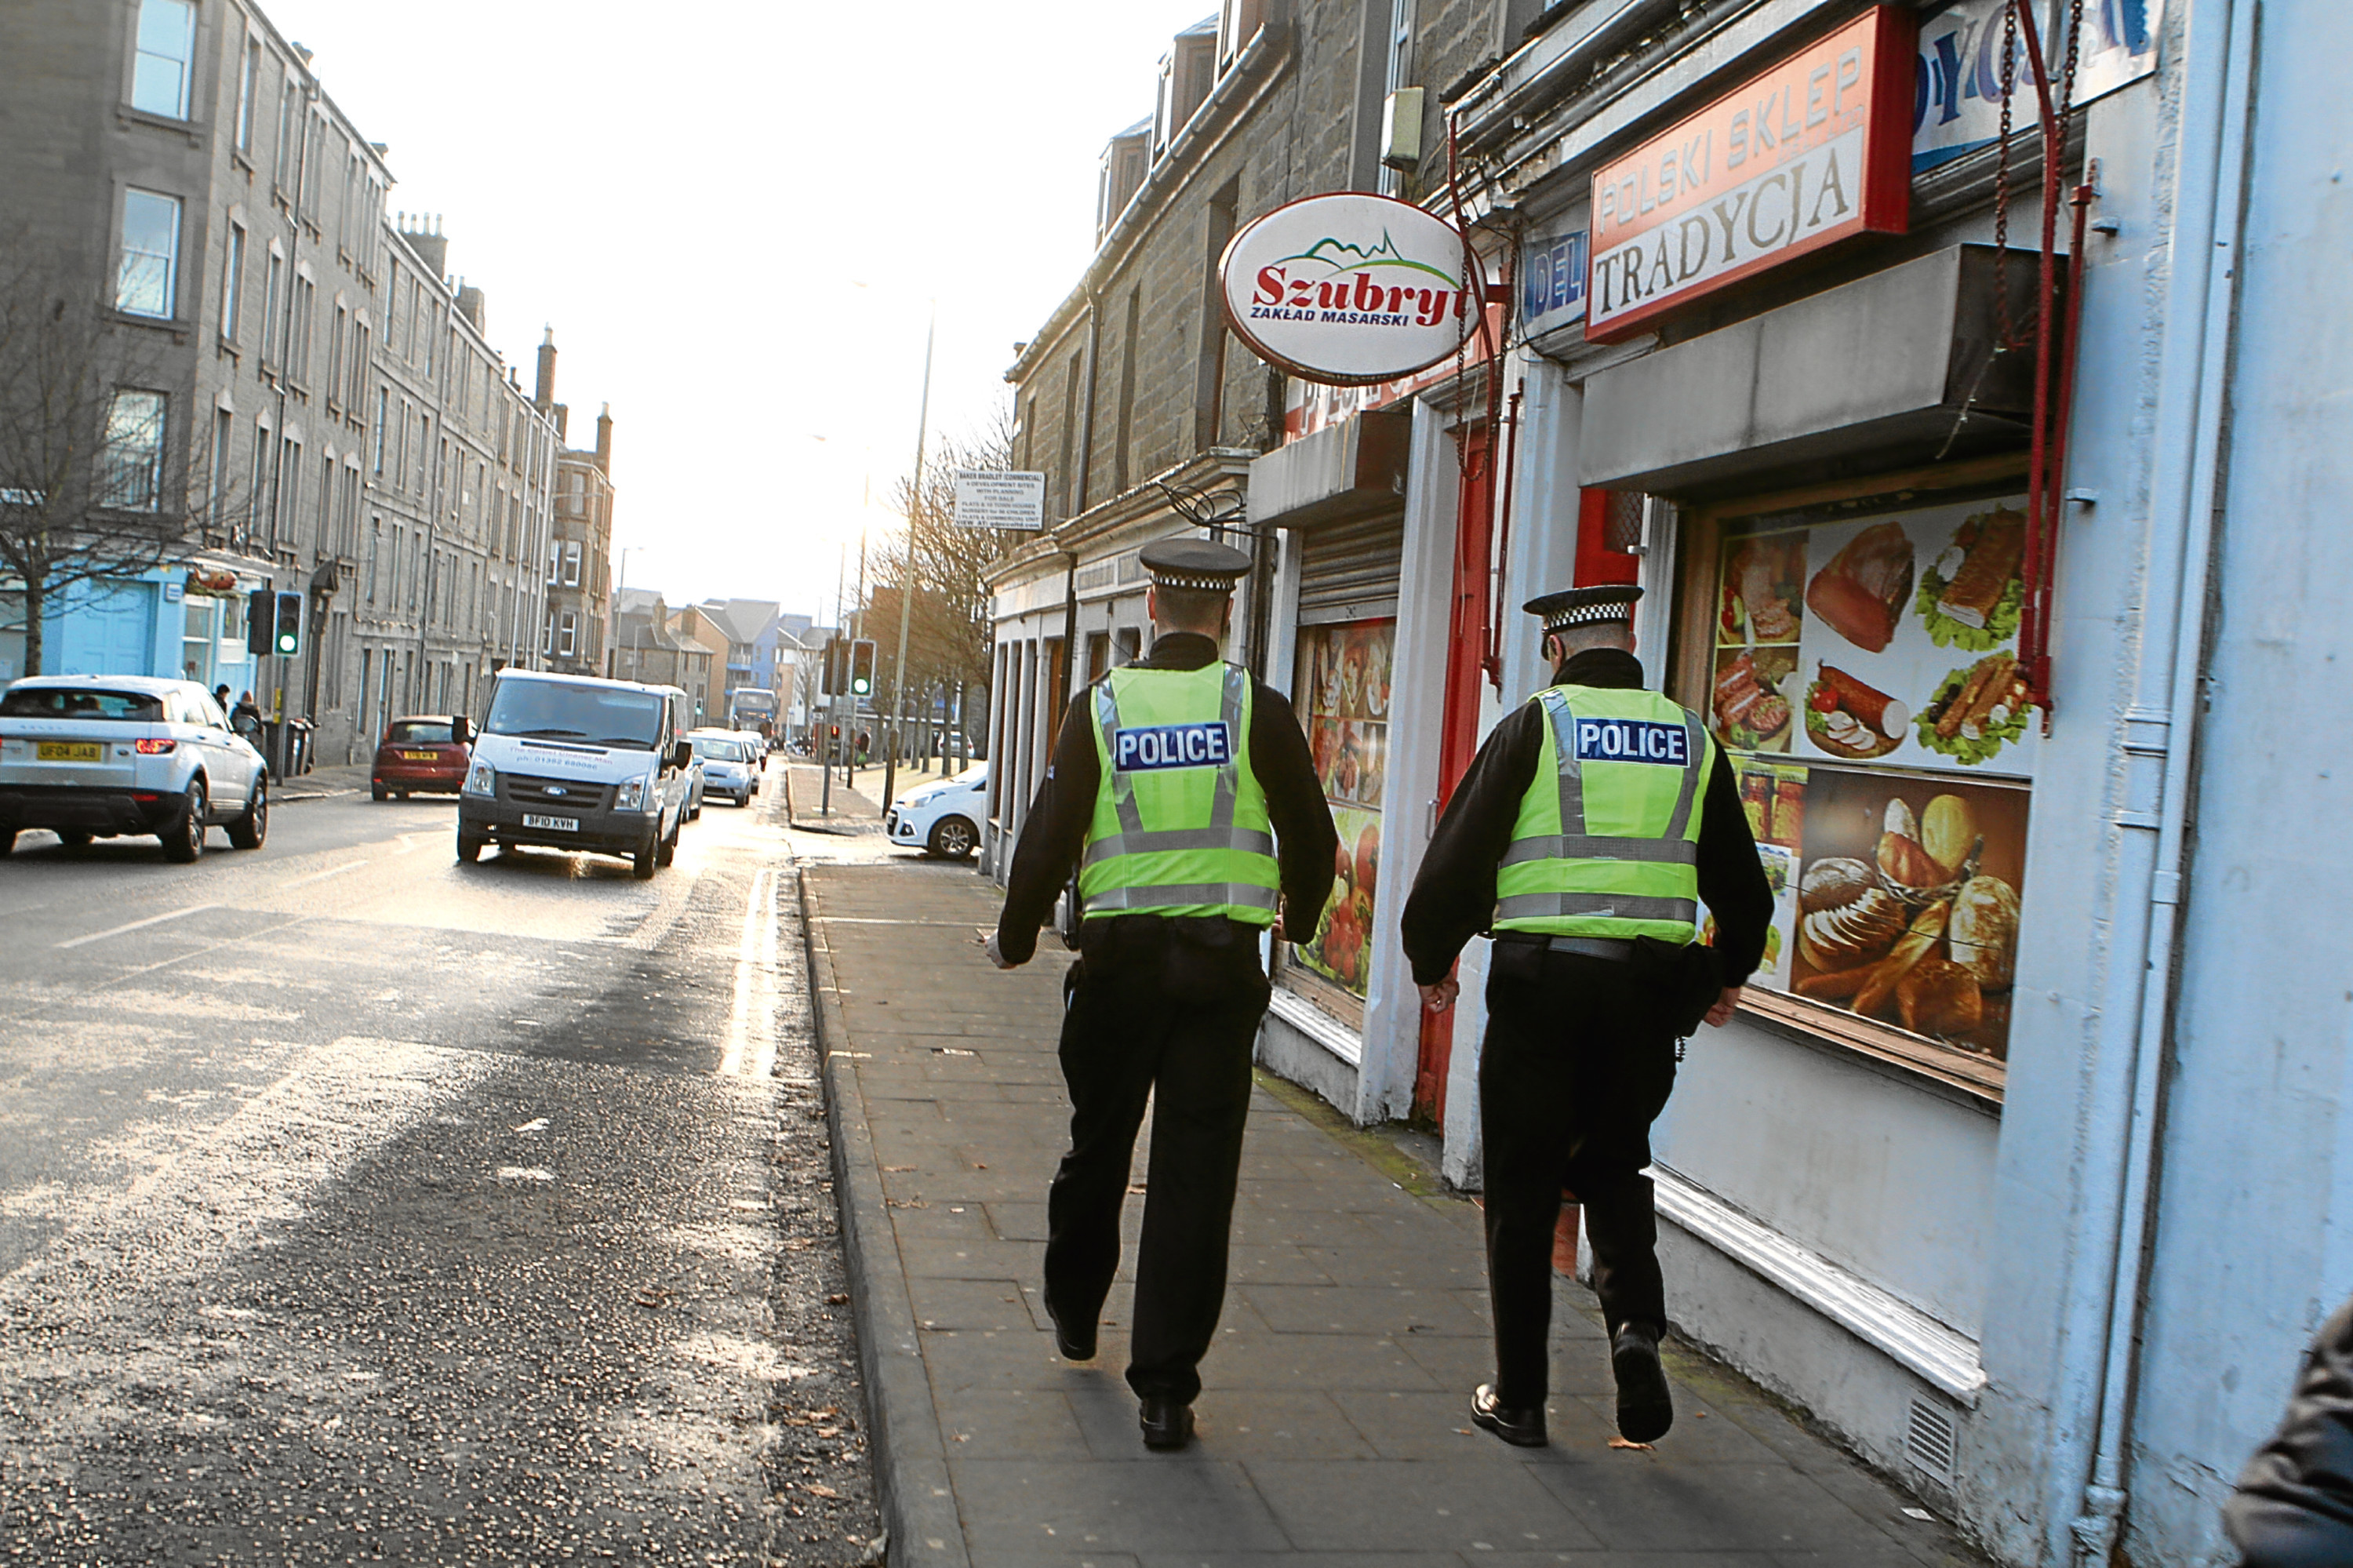 Police on the street in Maryfield and Wendy Sturrock, a local resident and business owner.